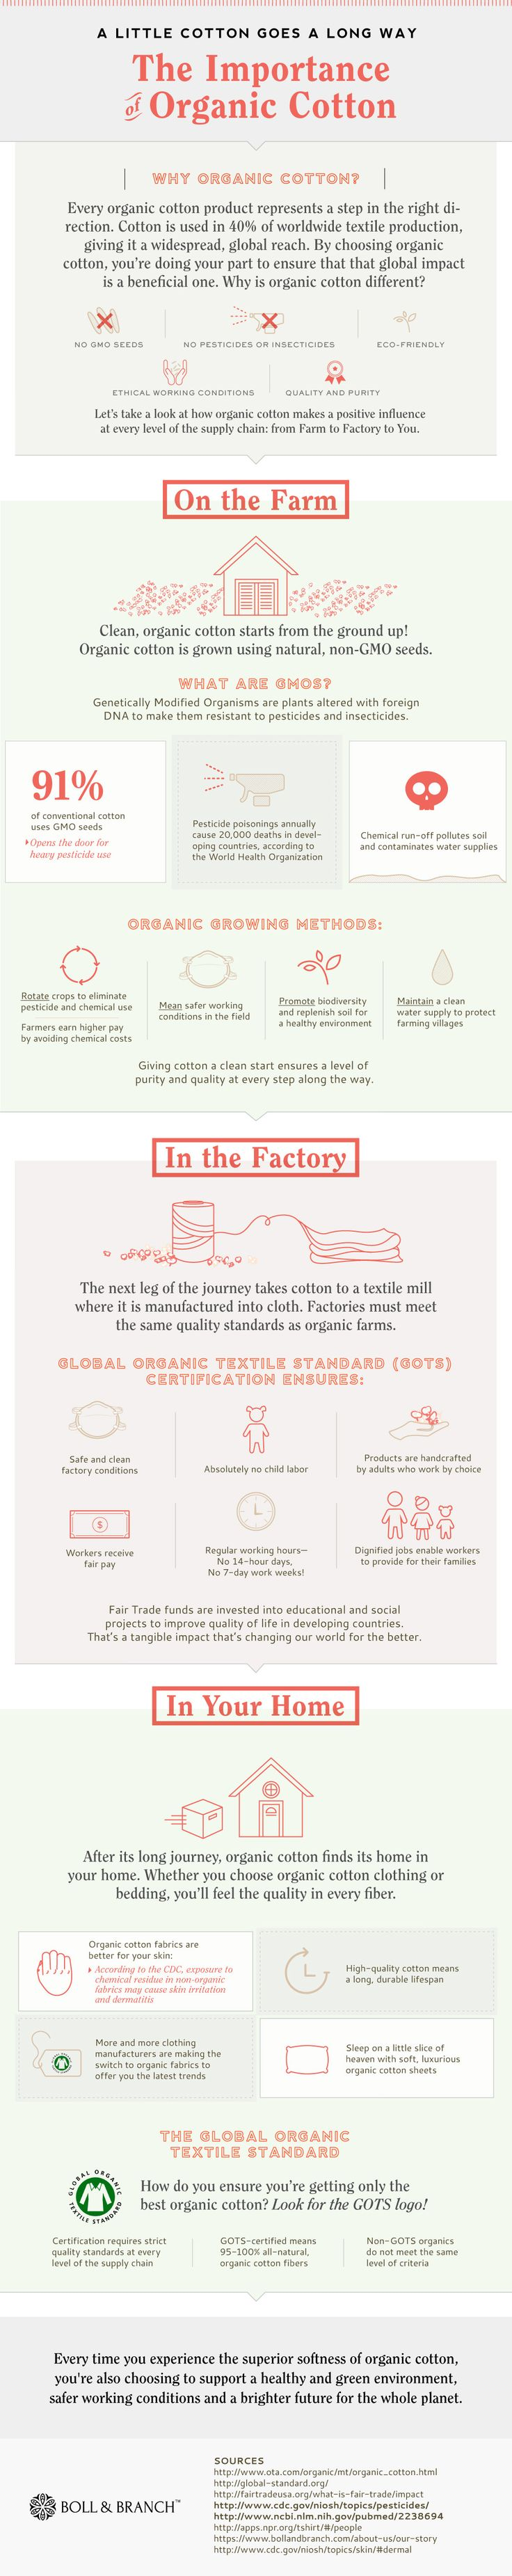 The Importance of Organic Cotton #infographic #Cotton #OrganicCotton #Fabrics